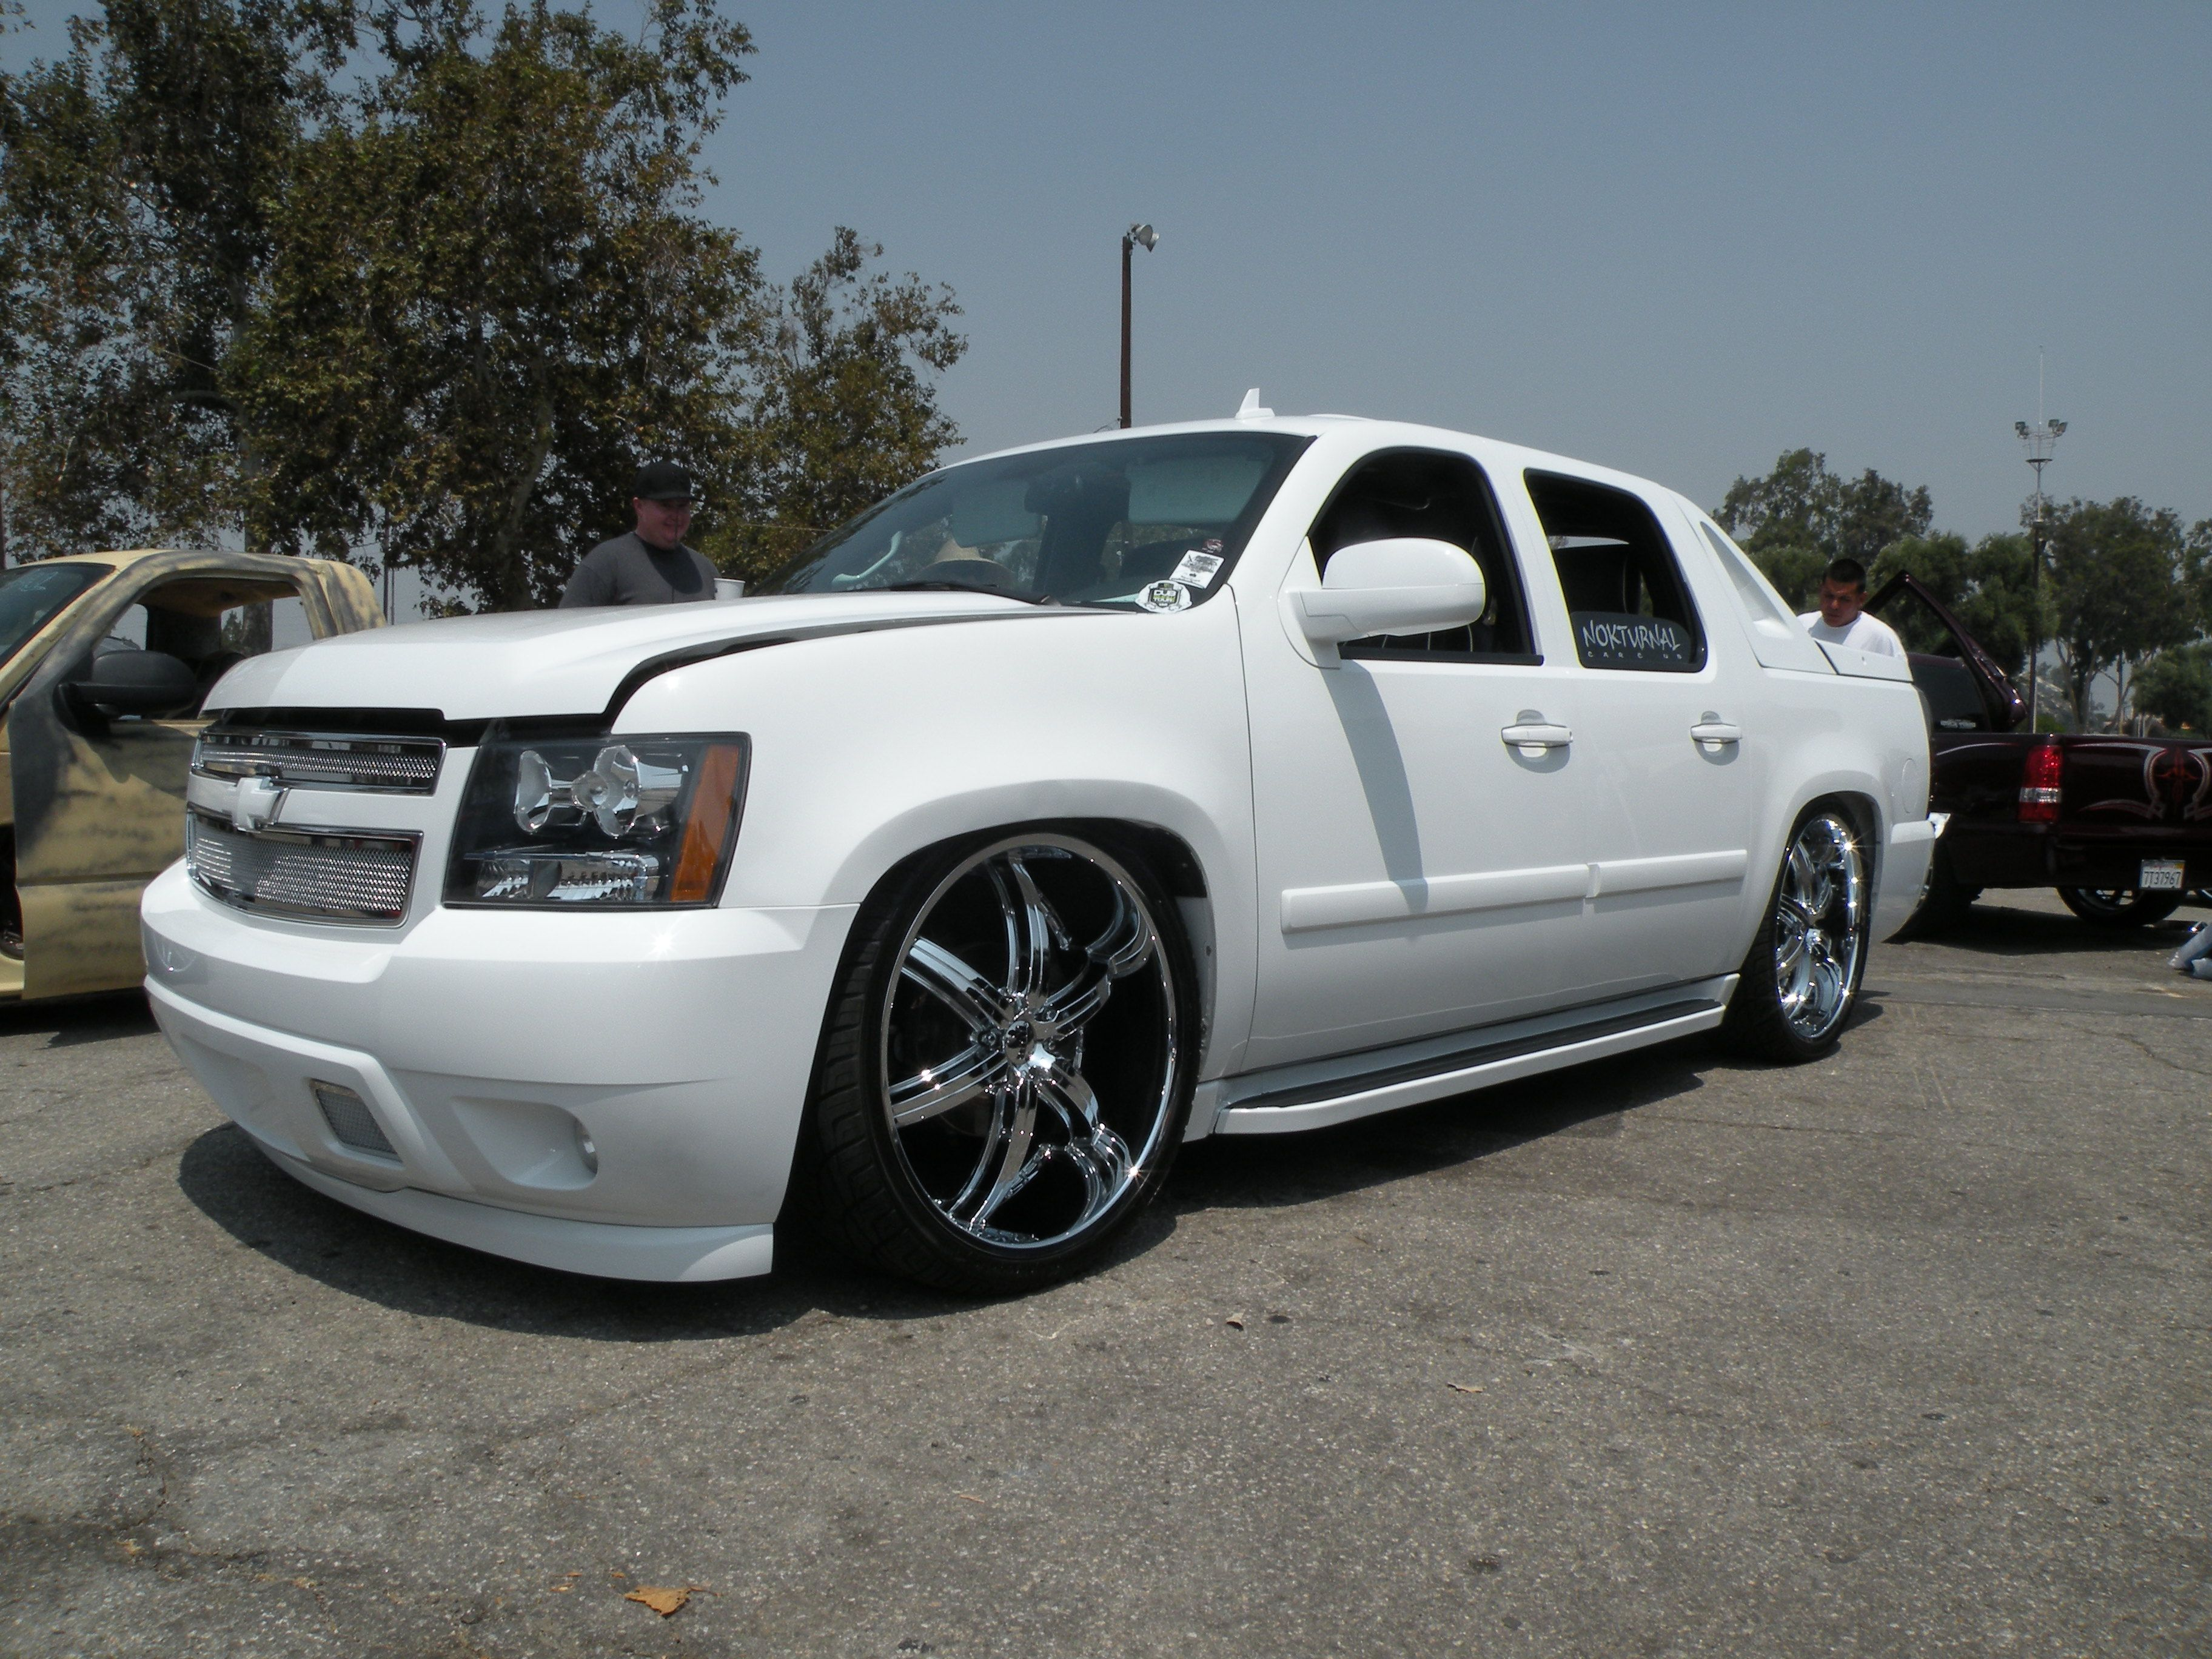 We offer fitment guarantee on our rims for chevrolet avalanche all chevrolet avalanche rims for sale ship free with fast easy returns shop now